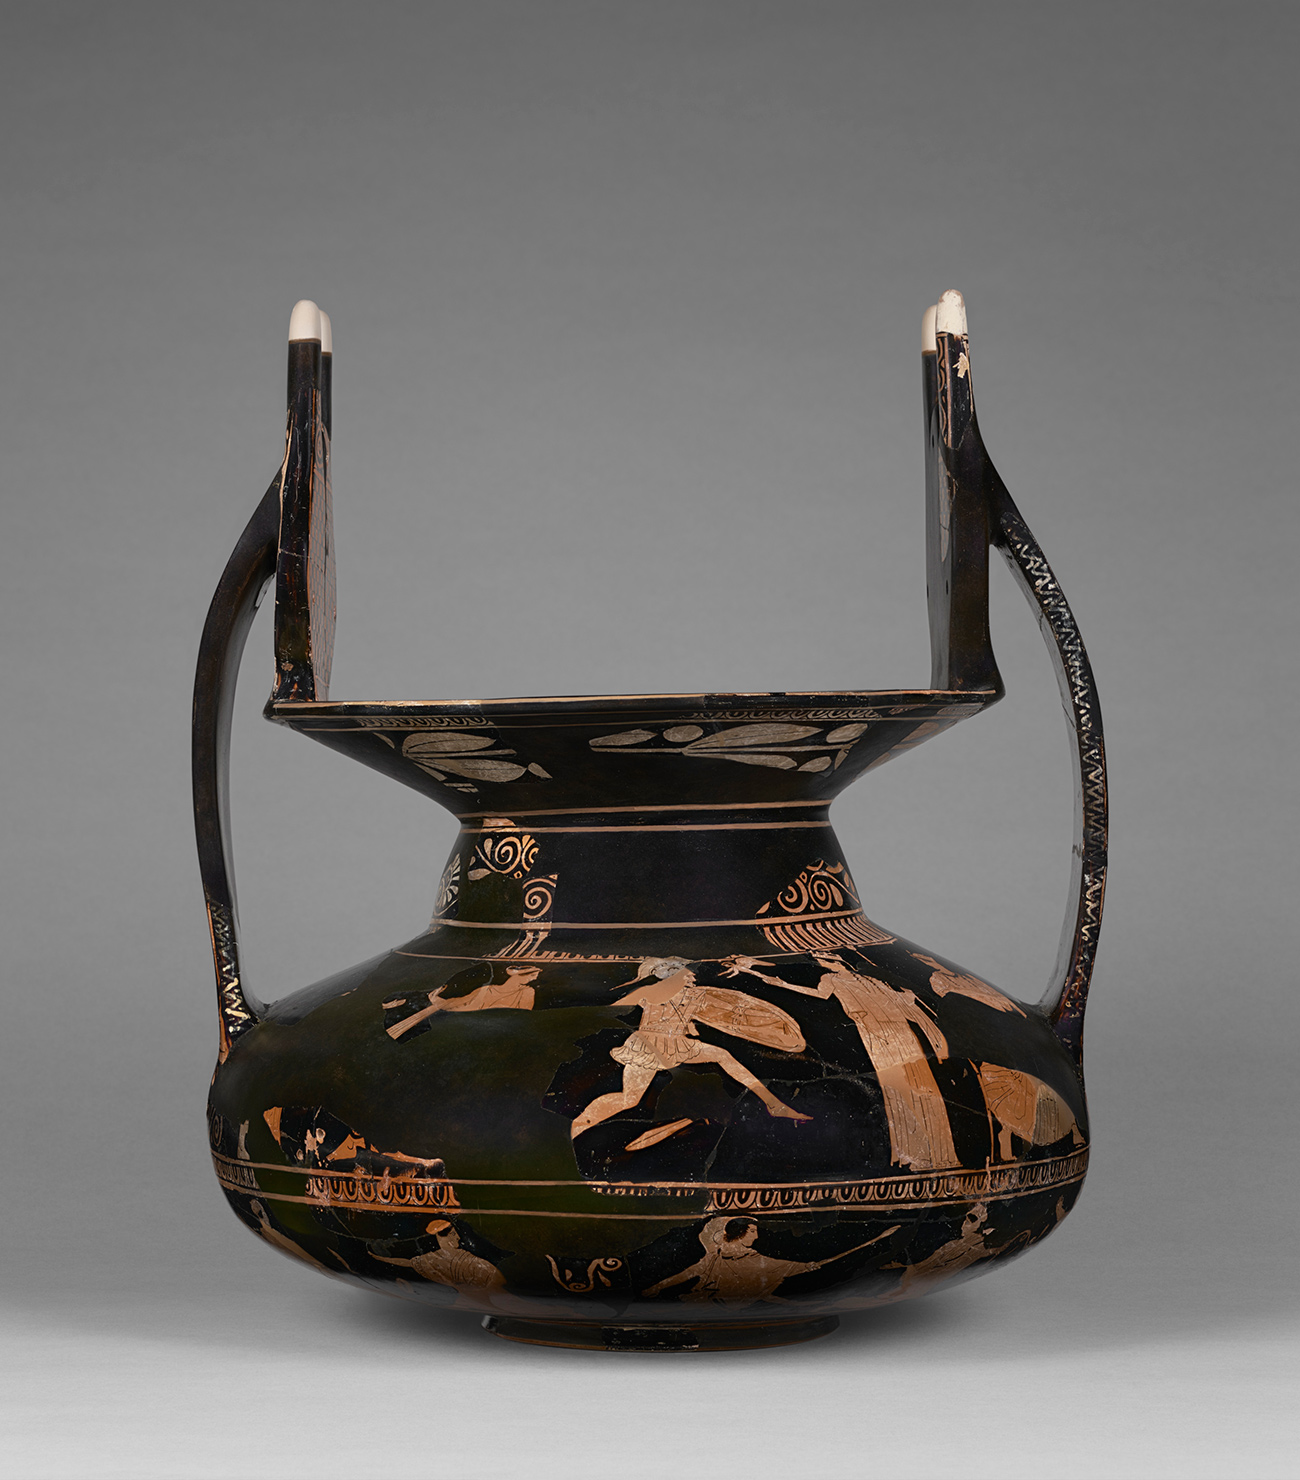 An ancient terracotta vessel, painted black with orange figures, has dramatic upswung handles